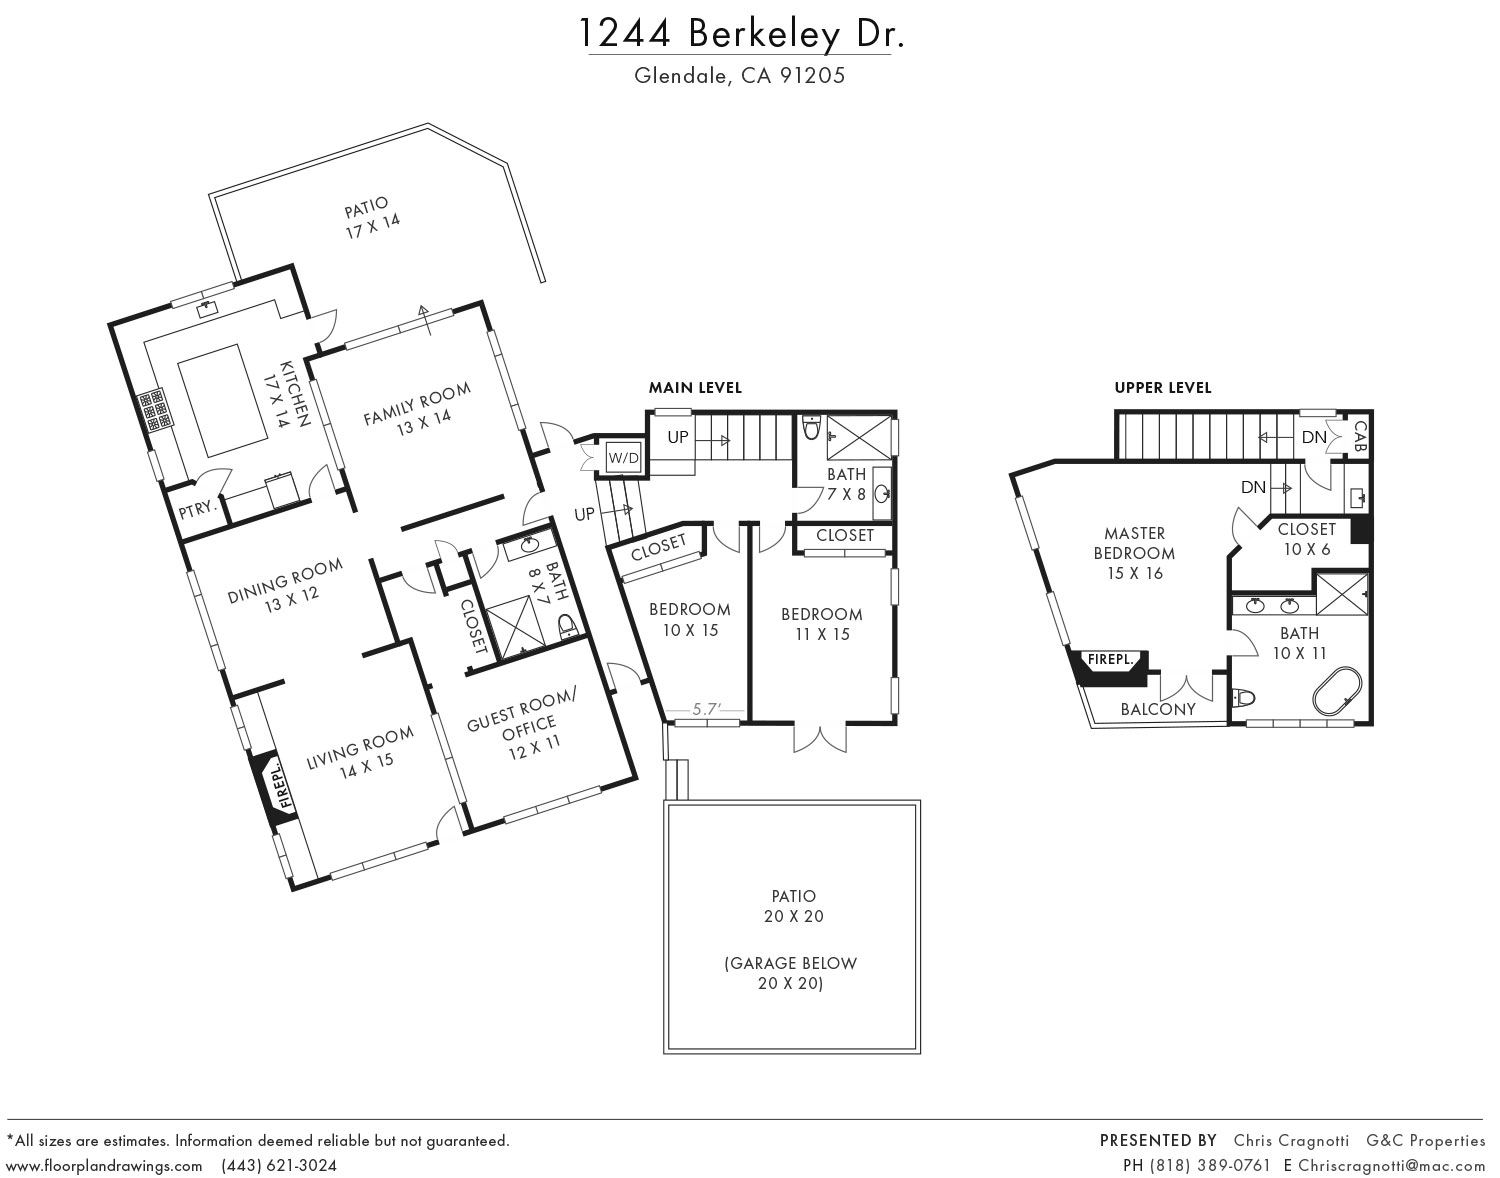 1244 Berkeley Dr Floorplan